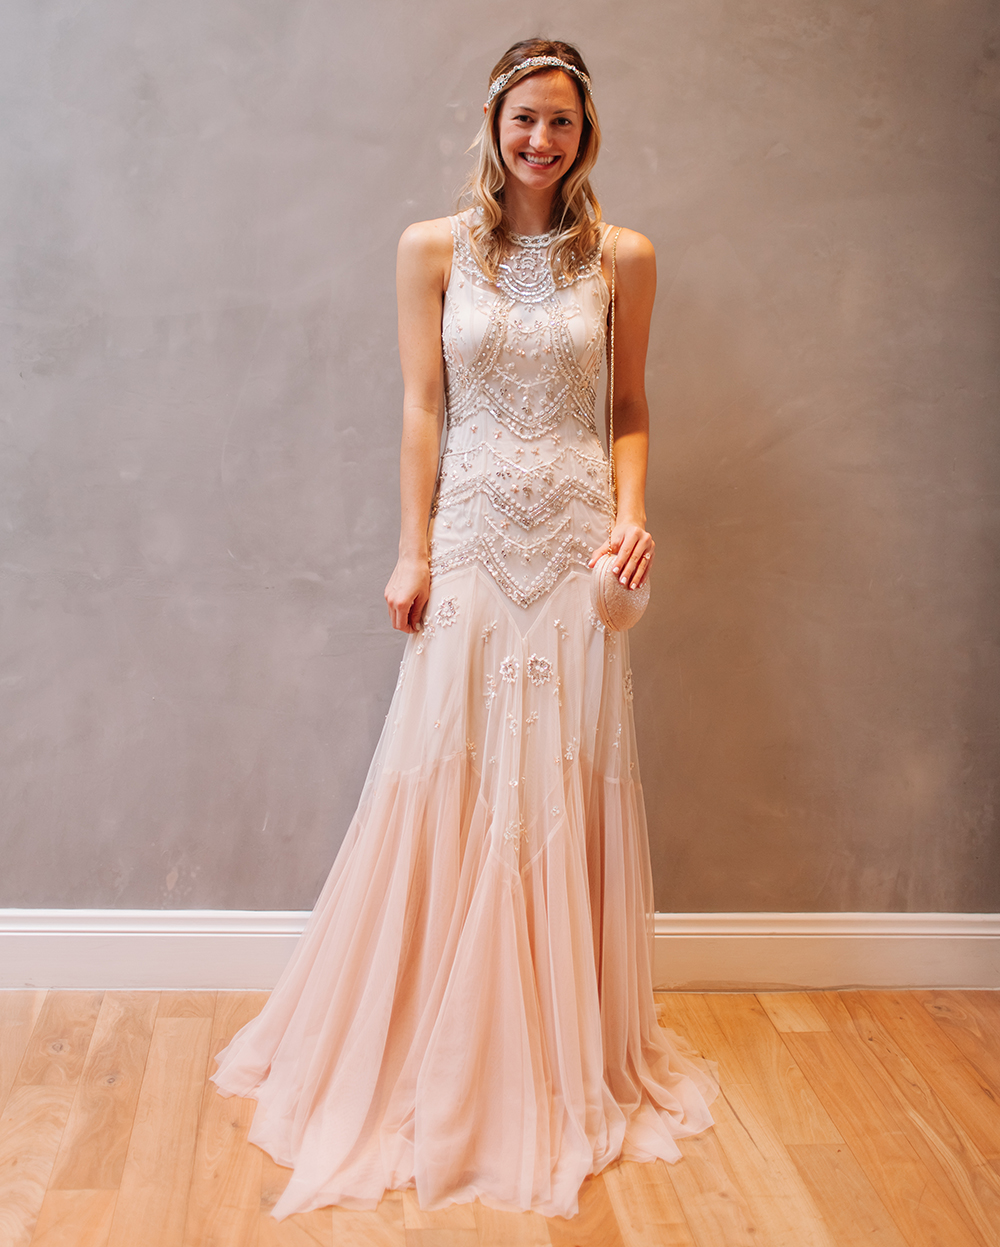 renting wedding dresses in houston wedding dresses in jax